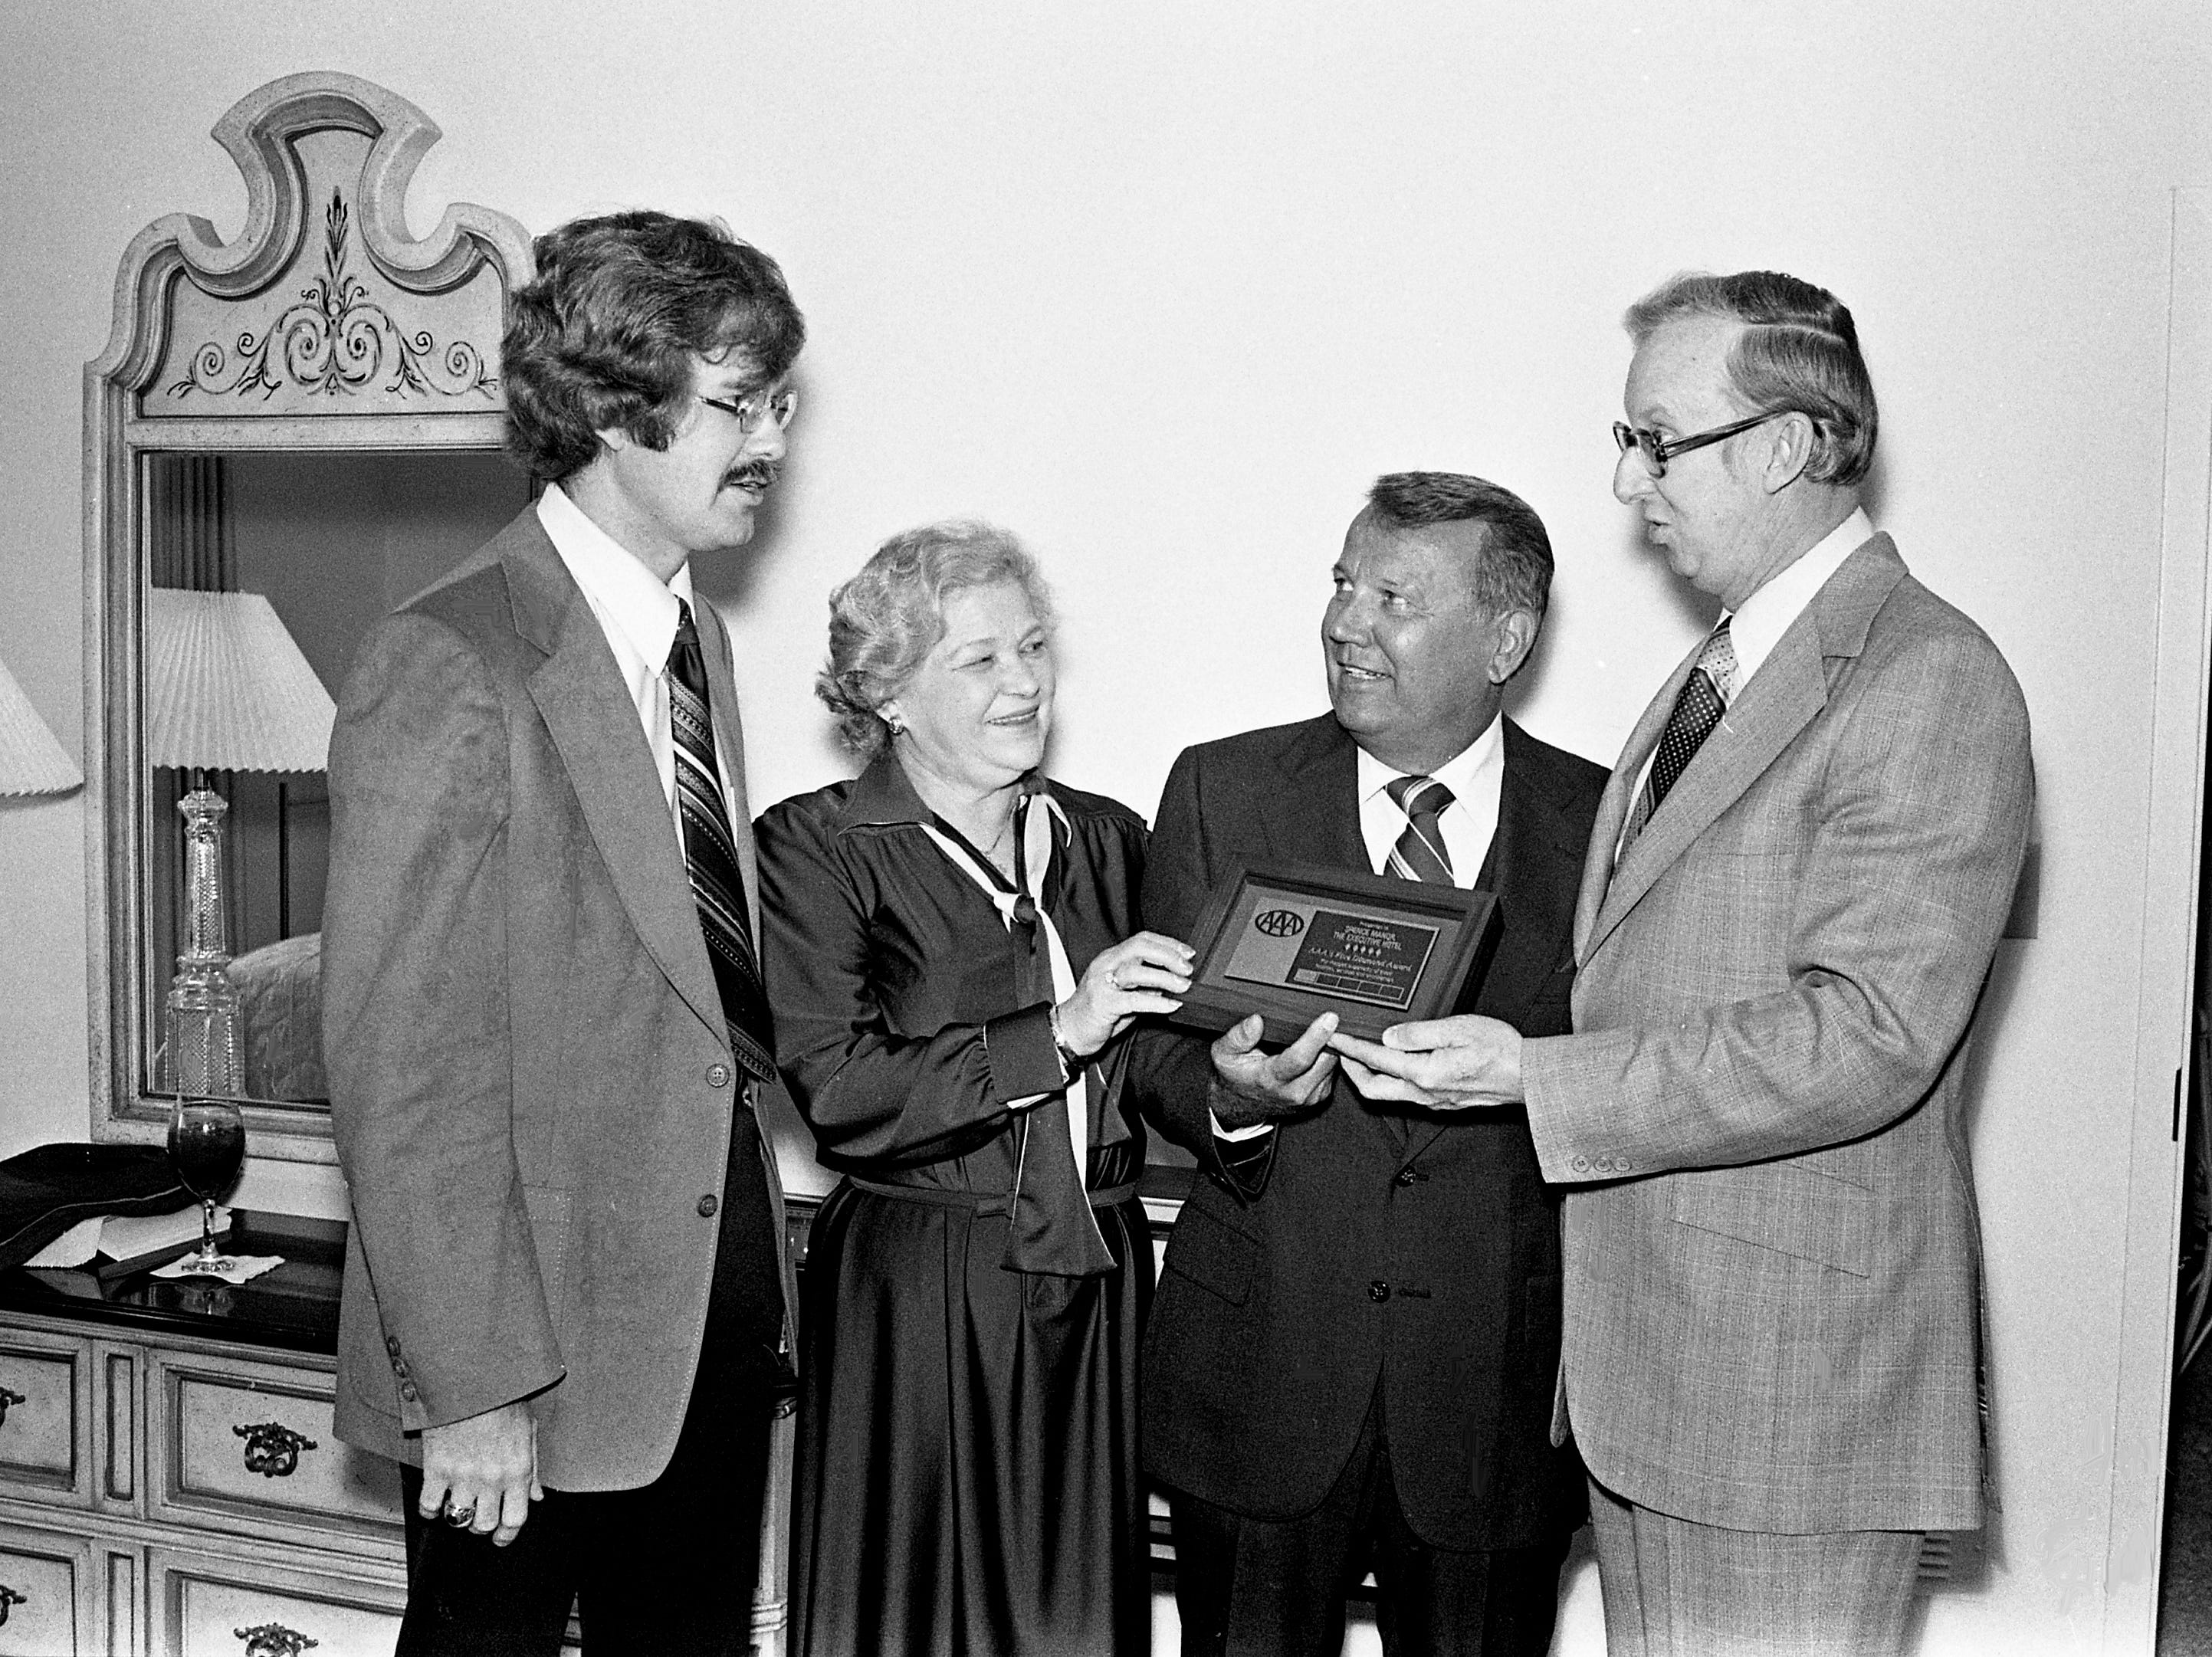 Edna Bloodwoth, general manager of the Spence Manor hotel at 11 Music Square E., and Jack Spence, second from right, president of Motel Systems Inc., receive a plaque denoting Spence Manor's highest overall five-diamond rating by the American Automobile Association on Feb. 7, 1979. Making the presentation are Lynn Schneider, left, of the AAA national travel department and Thomas H. Price, president of the Mid-South Automobile Club, a local AAA affiliate.